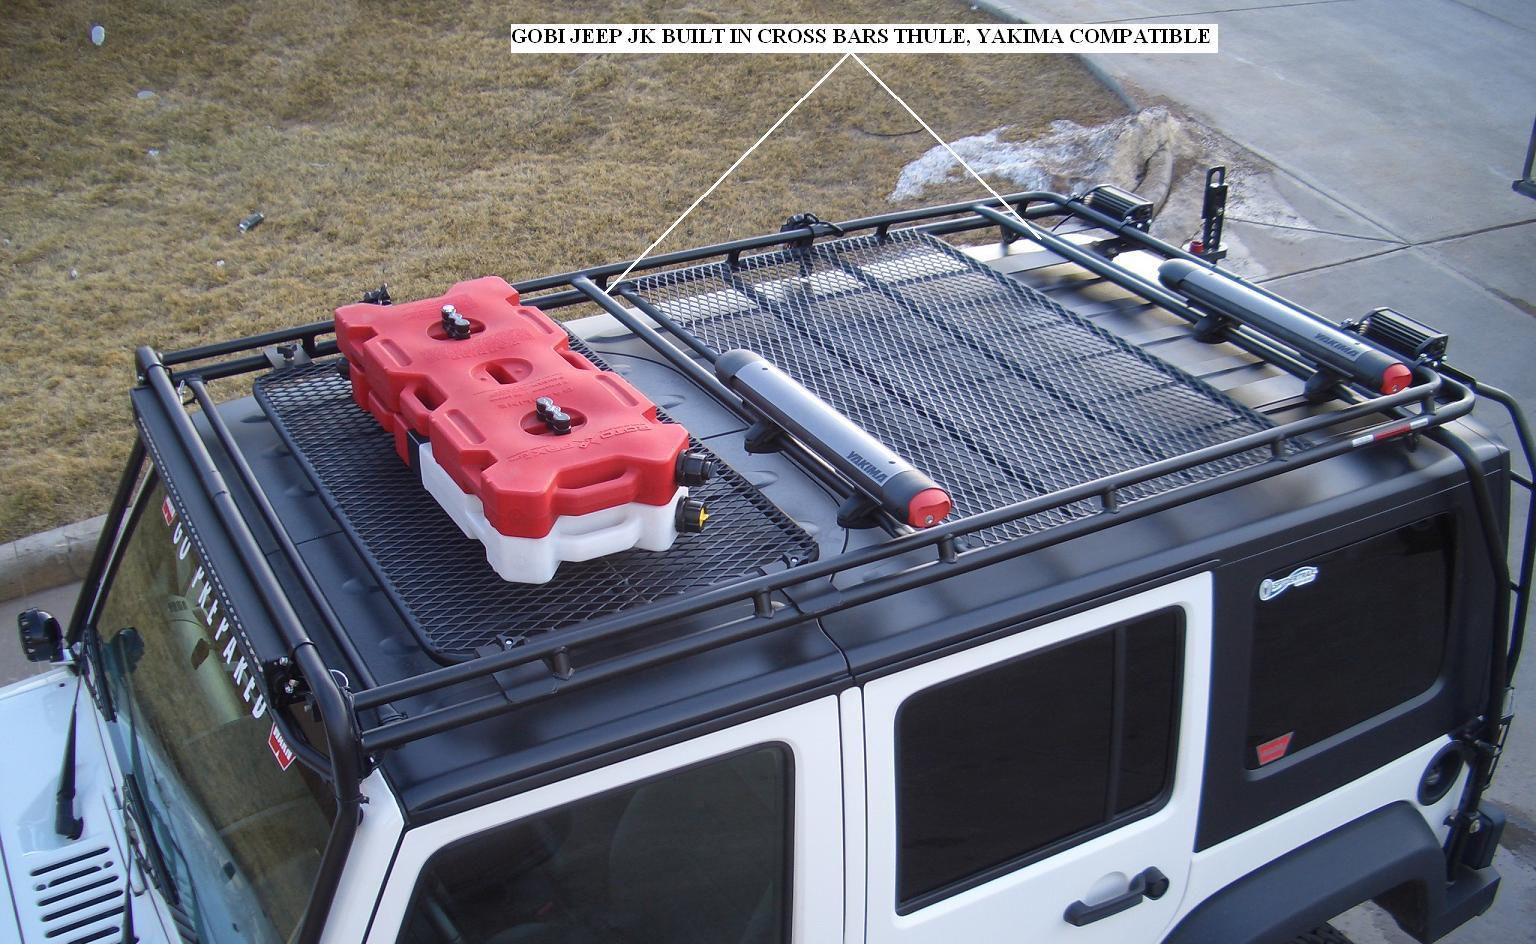 hight resolution of jeep wrangler round led lights gobi rack gobi jeep jk built in cross bars yakima thule compatible with attached